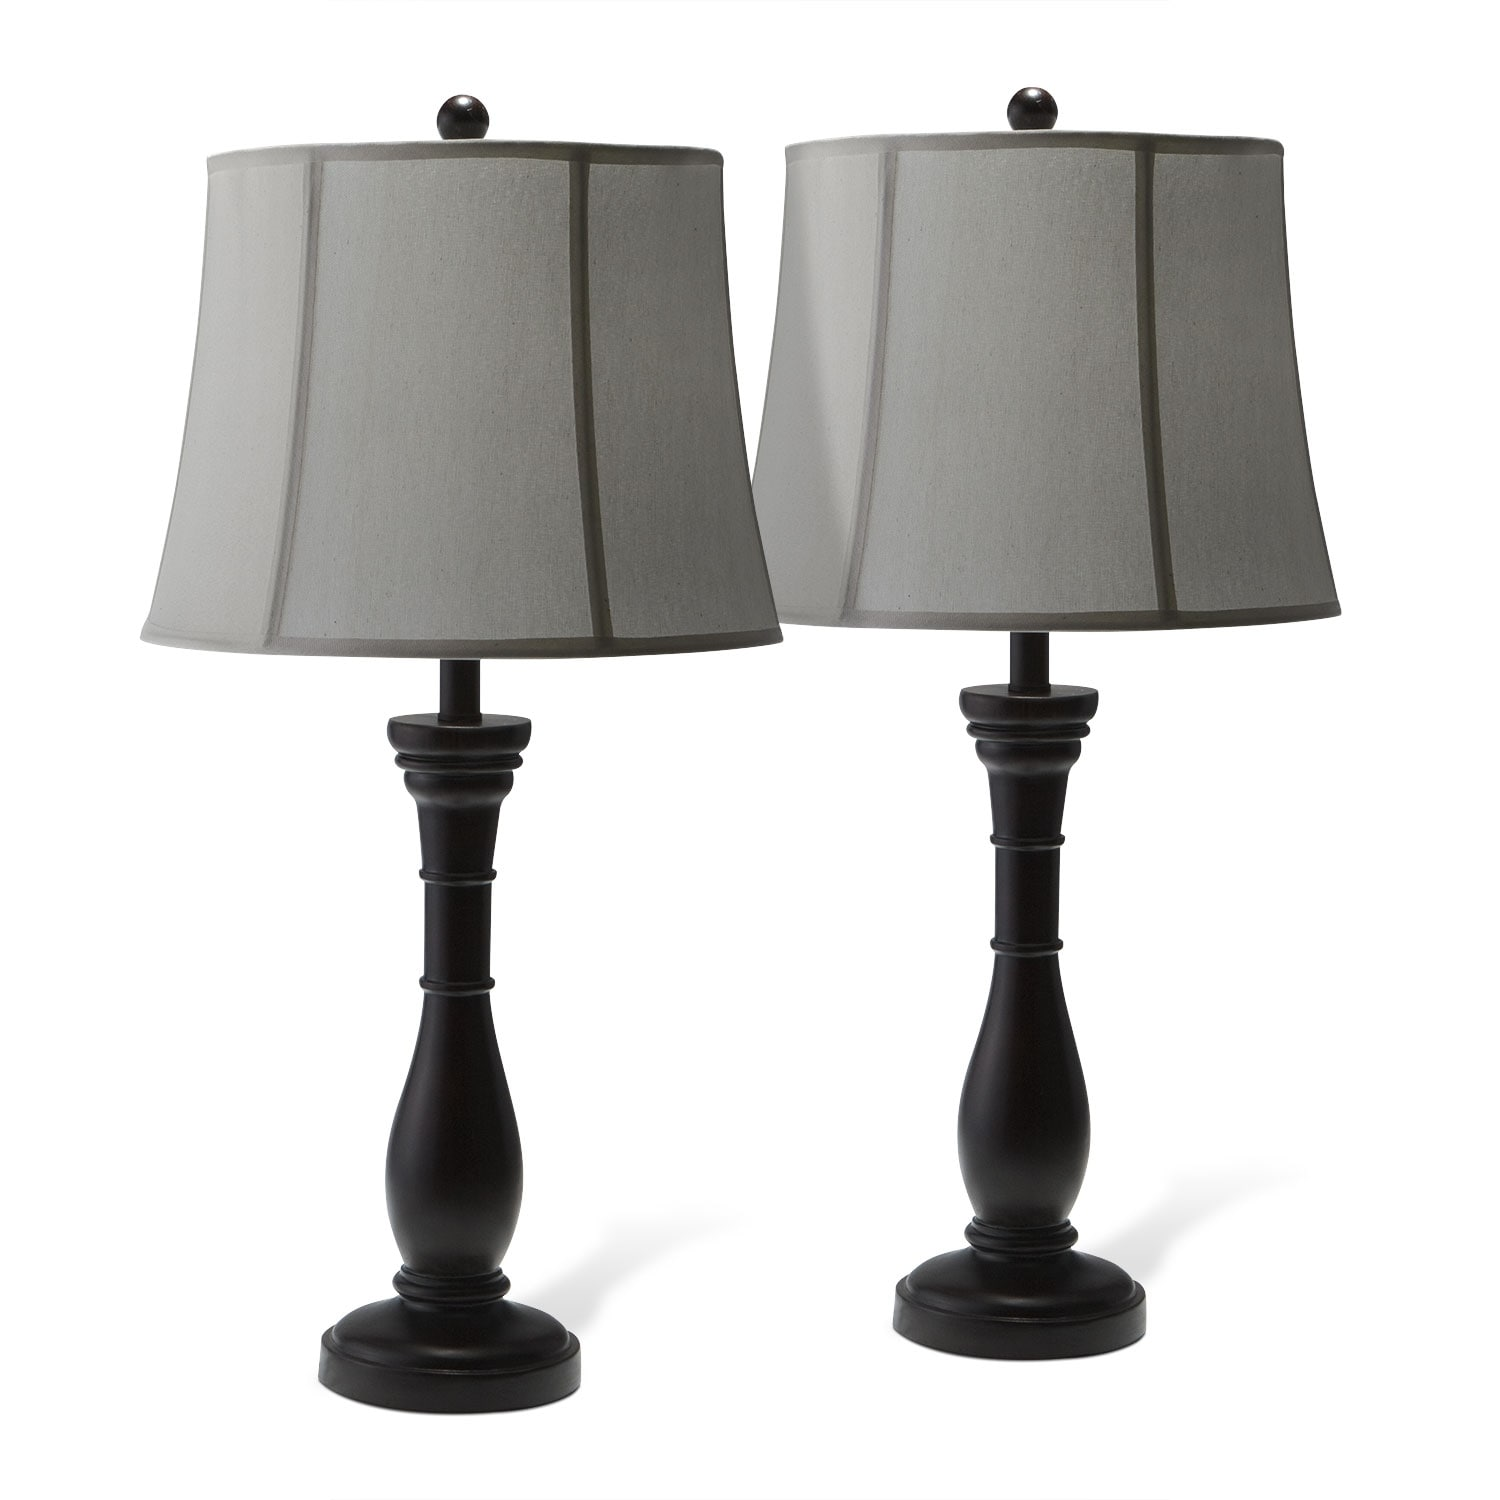 Home Accessories - Annette 2-Pack Table Lamp Set